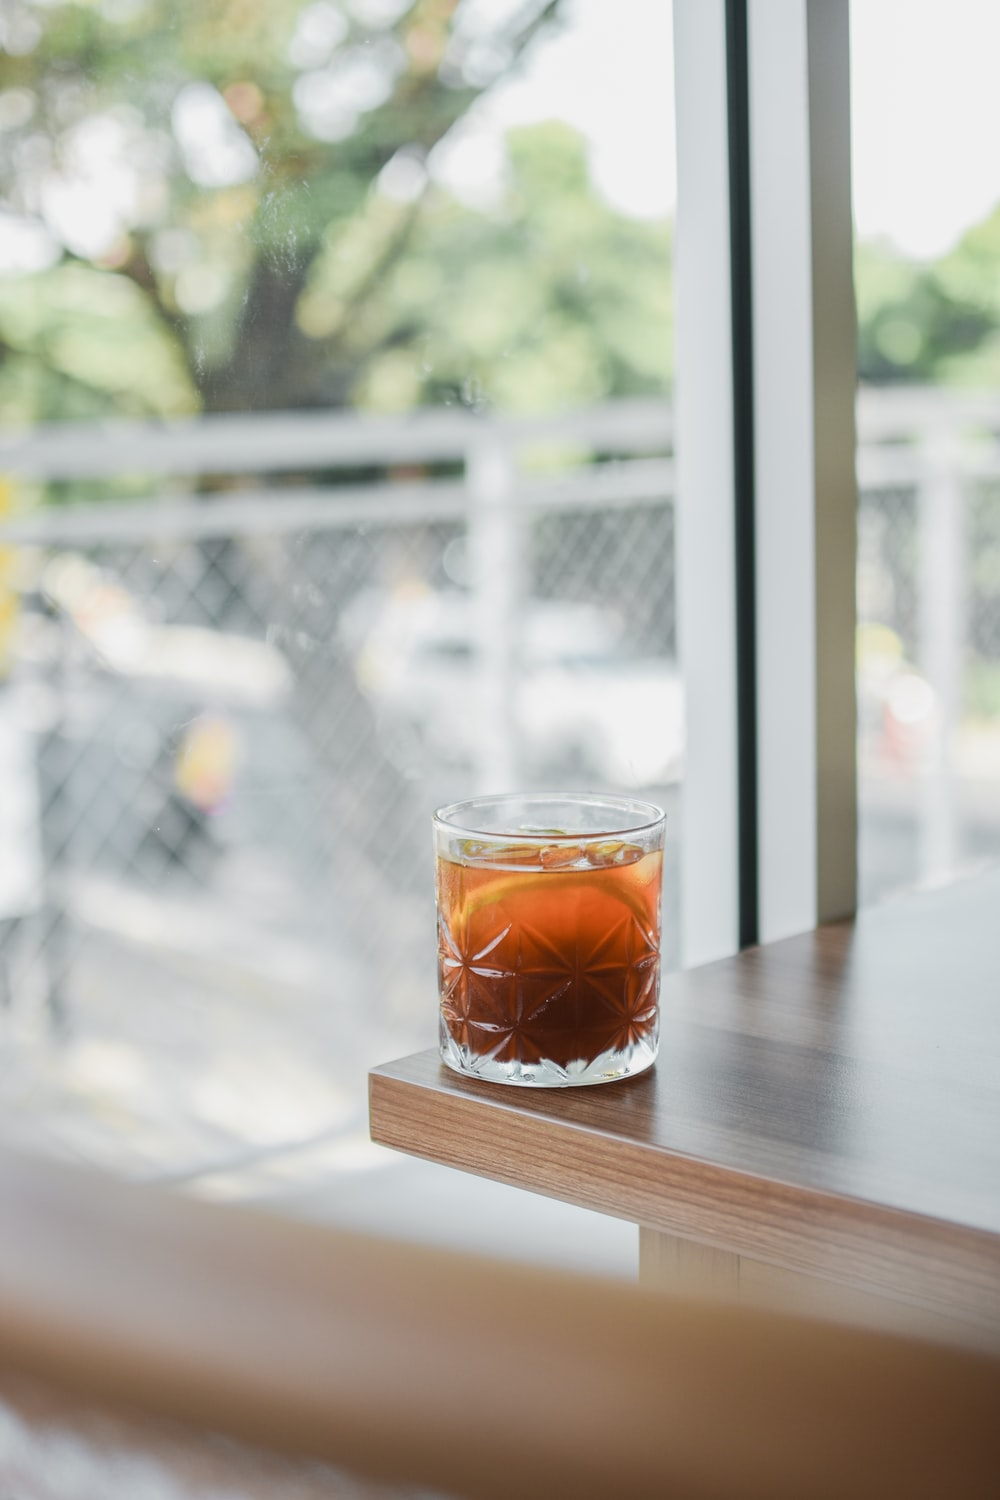 clear drinking glass with brown liquid inside